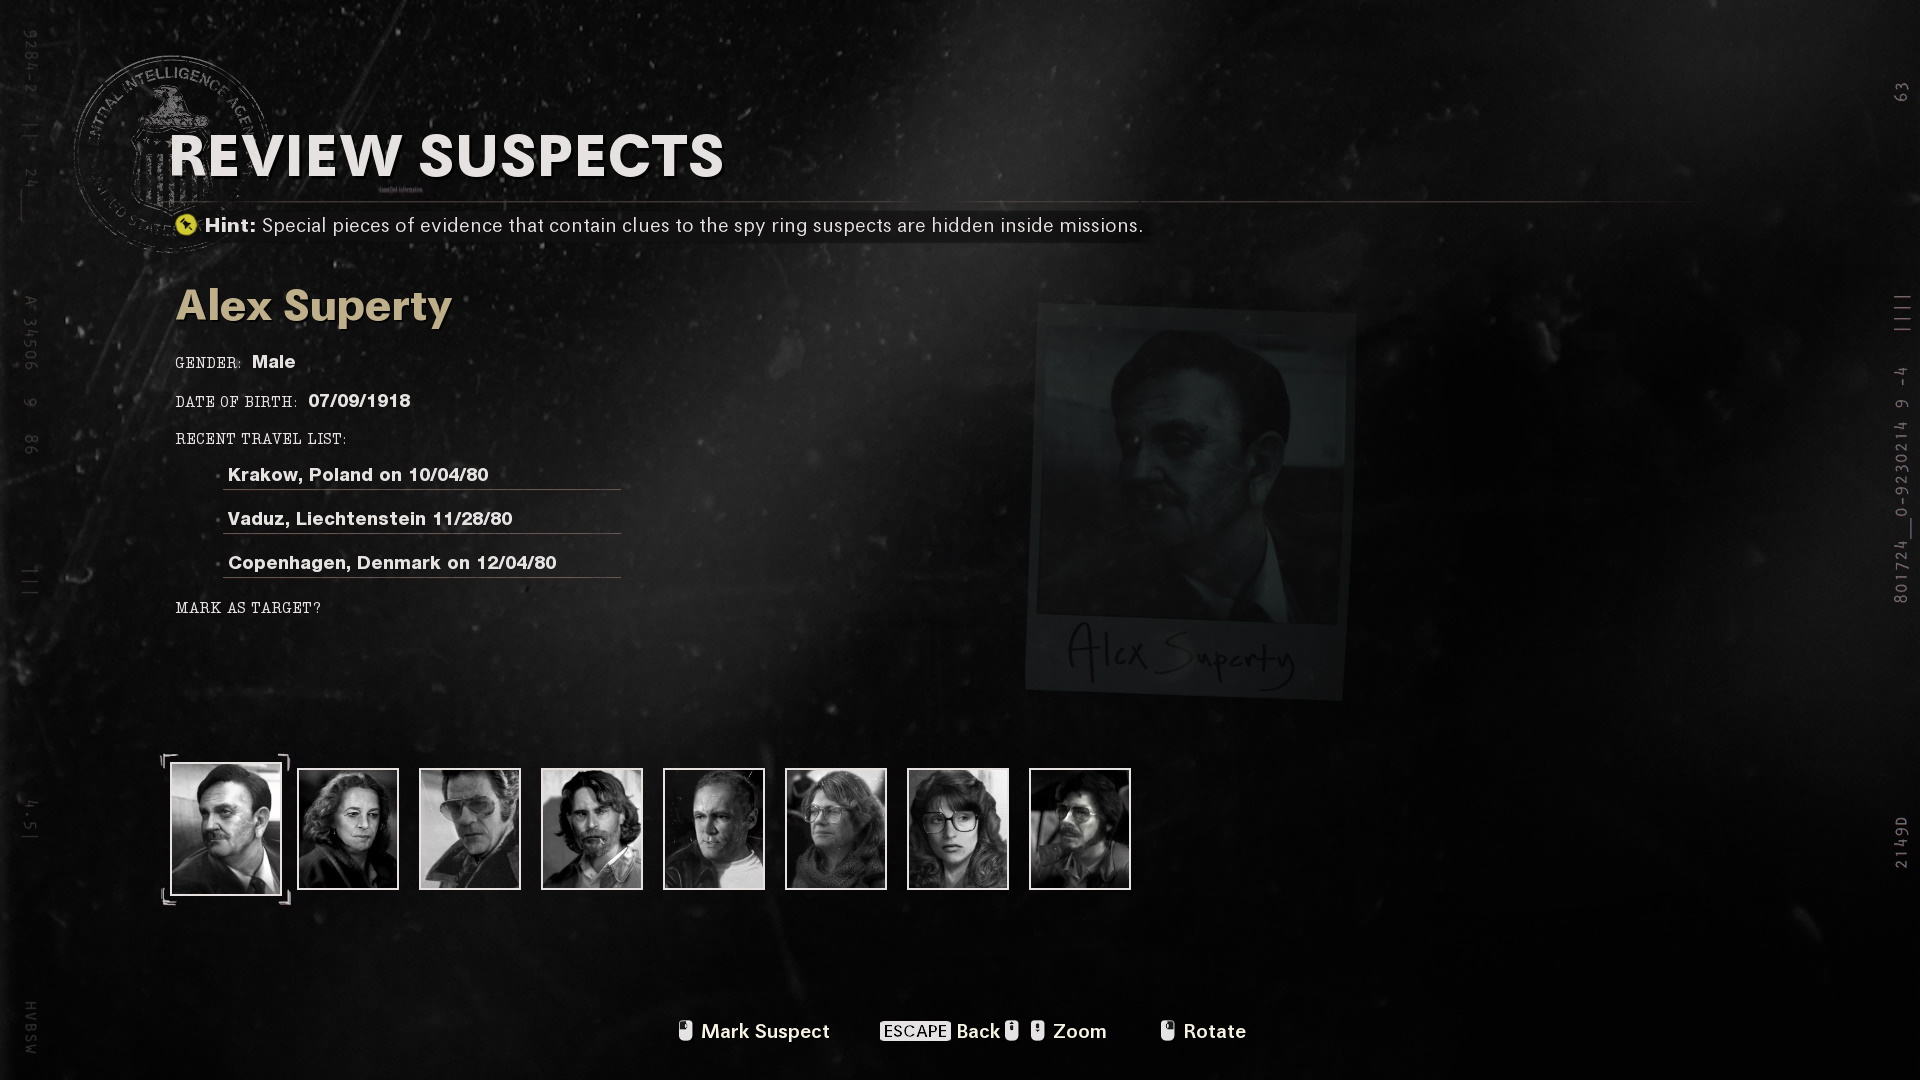 The 'review suspects' menu on Operation Red Circus, showing the suspects and their locations.